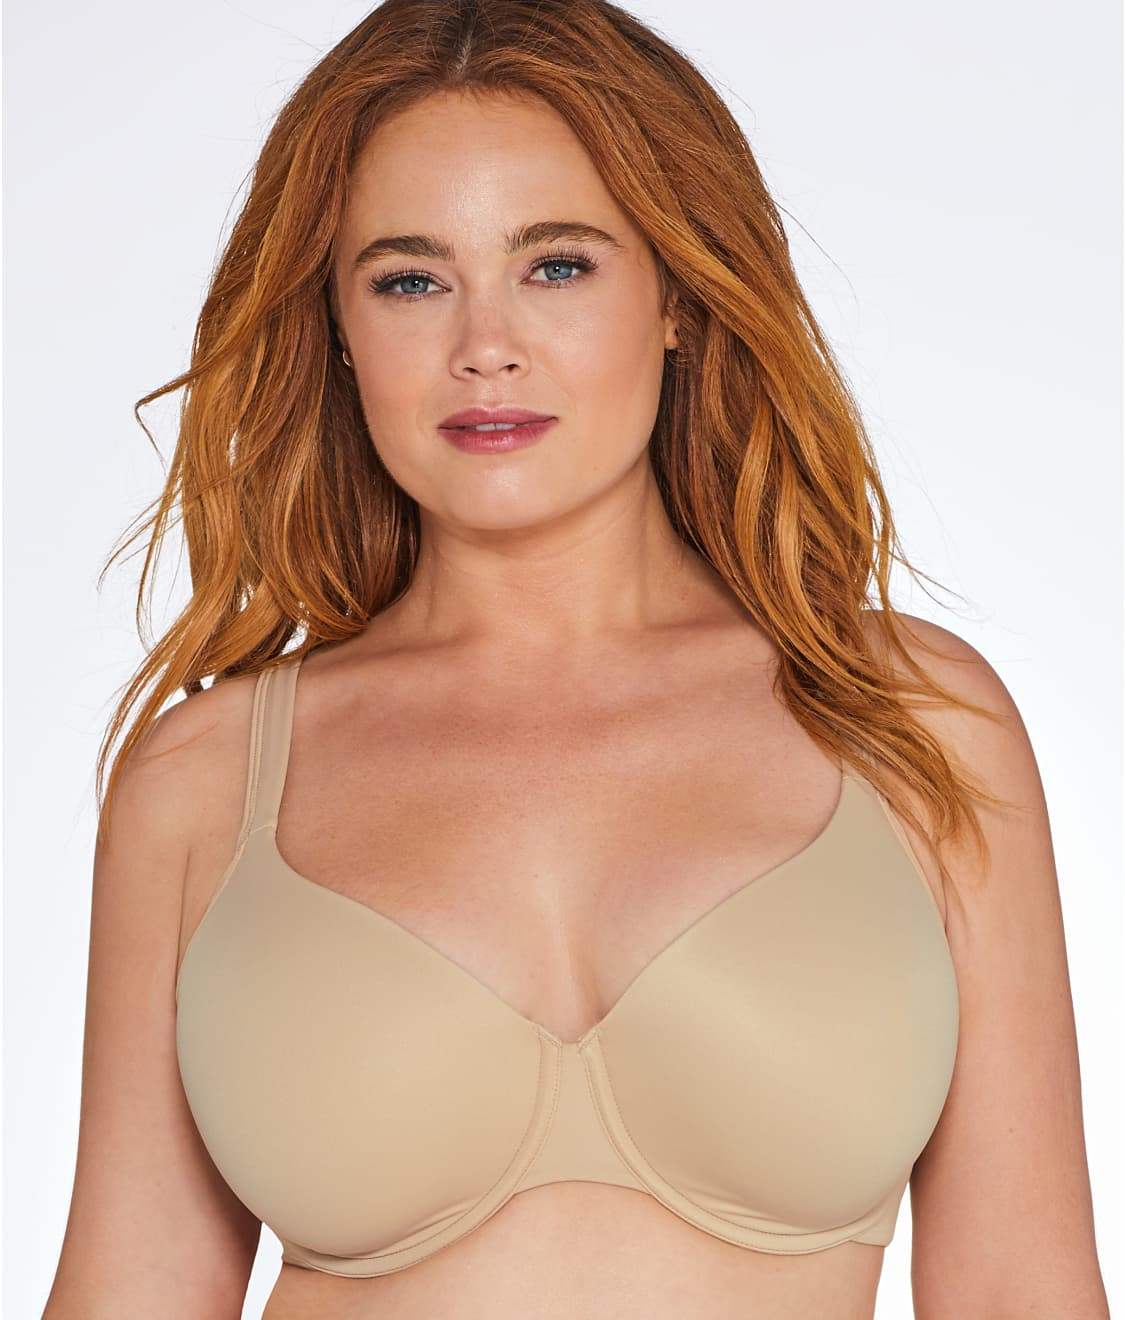 a07dfffbc0 See One Smooth U™ Side Smoothing T-Shirt Bra in Nude